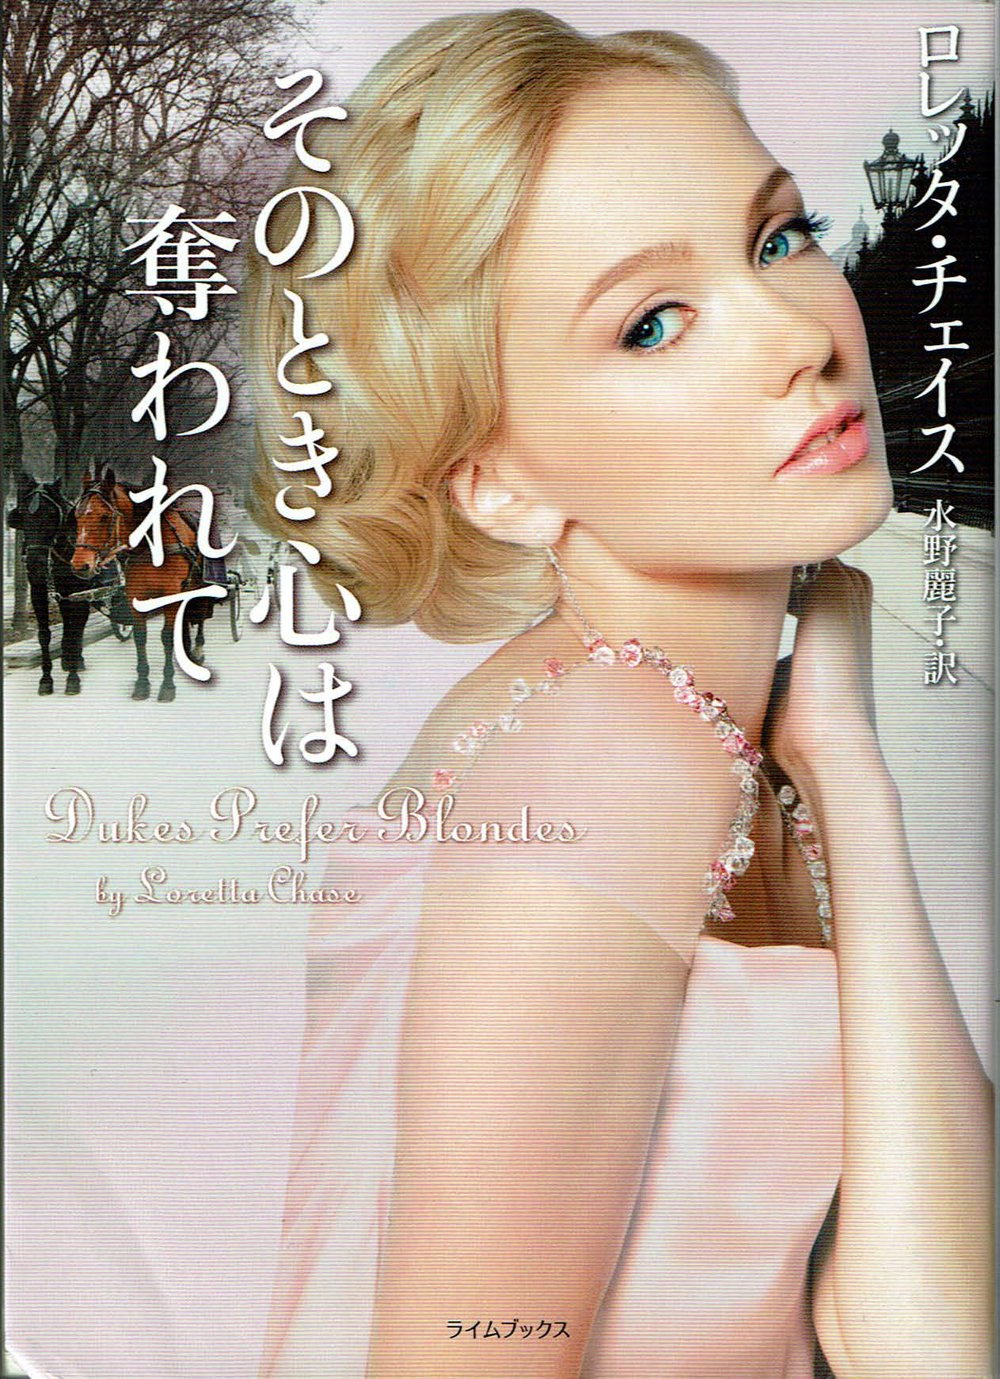 Japan Dukes Prefer Blondes.jpg